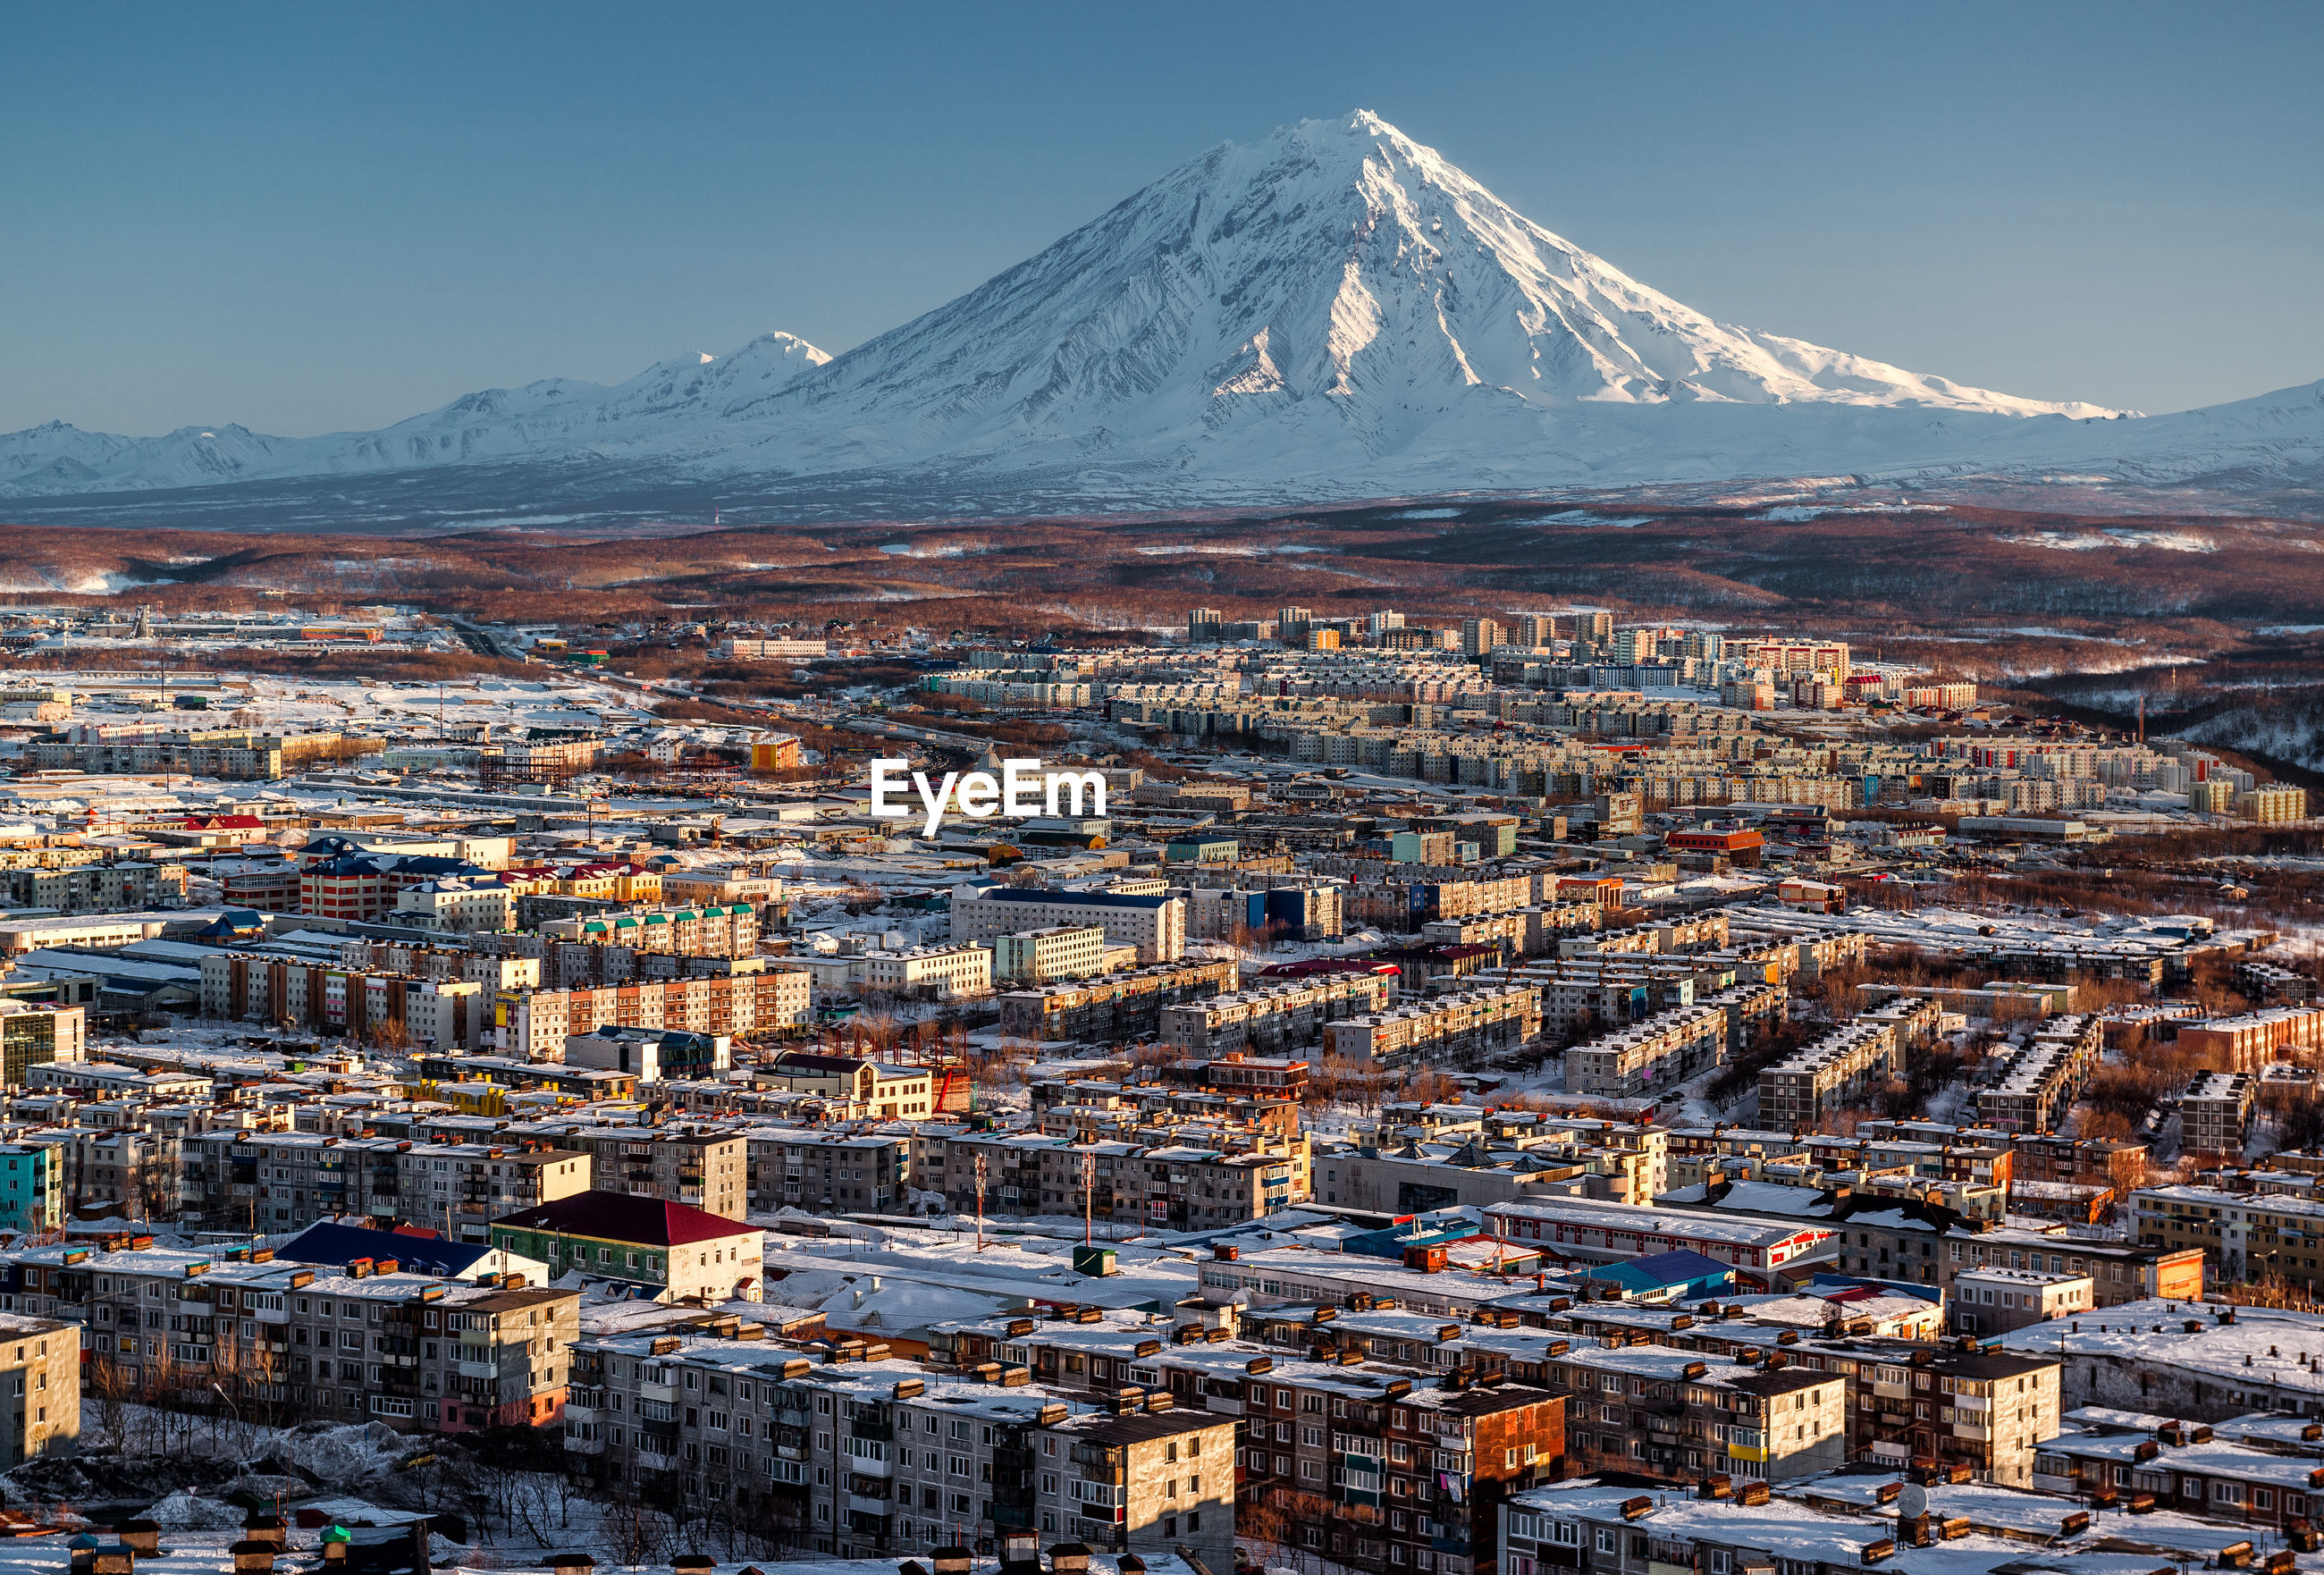 View of townscape and mountain during winter